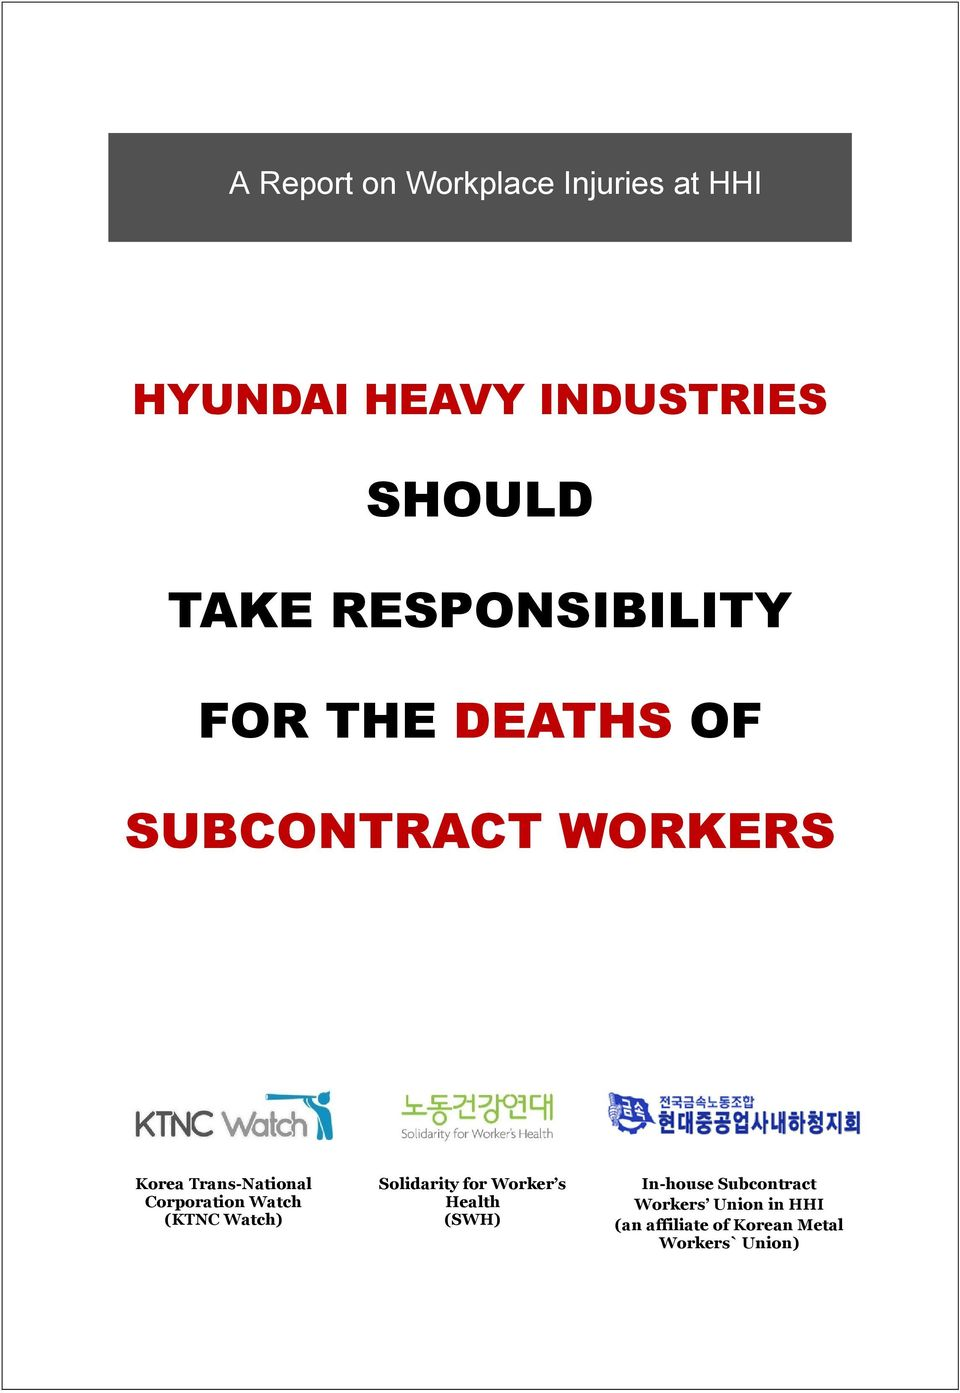 (KTNC Watch) Solidarity for Worker s Health (SWH) In-house